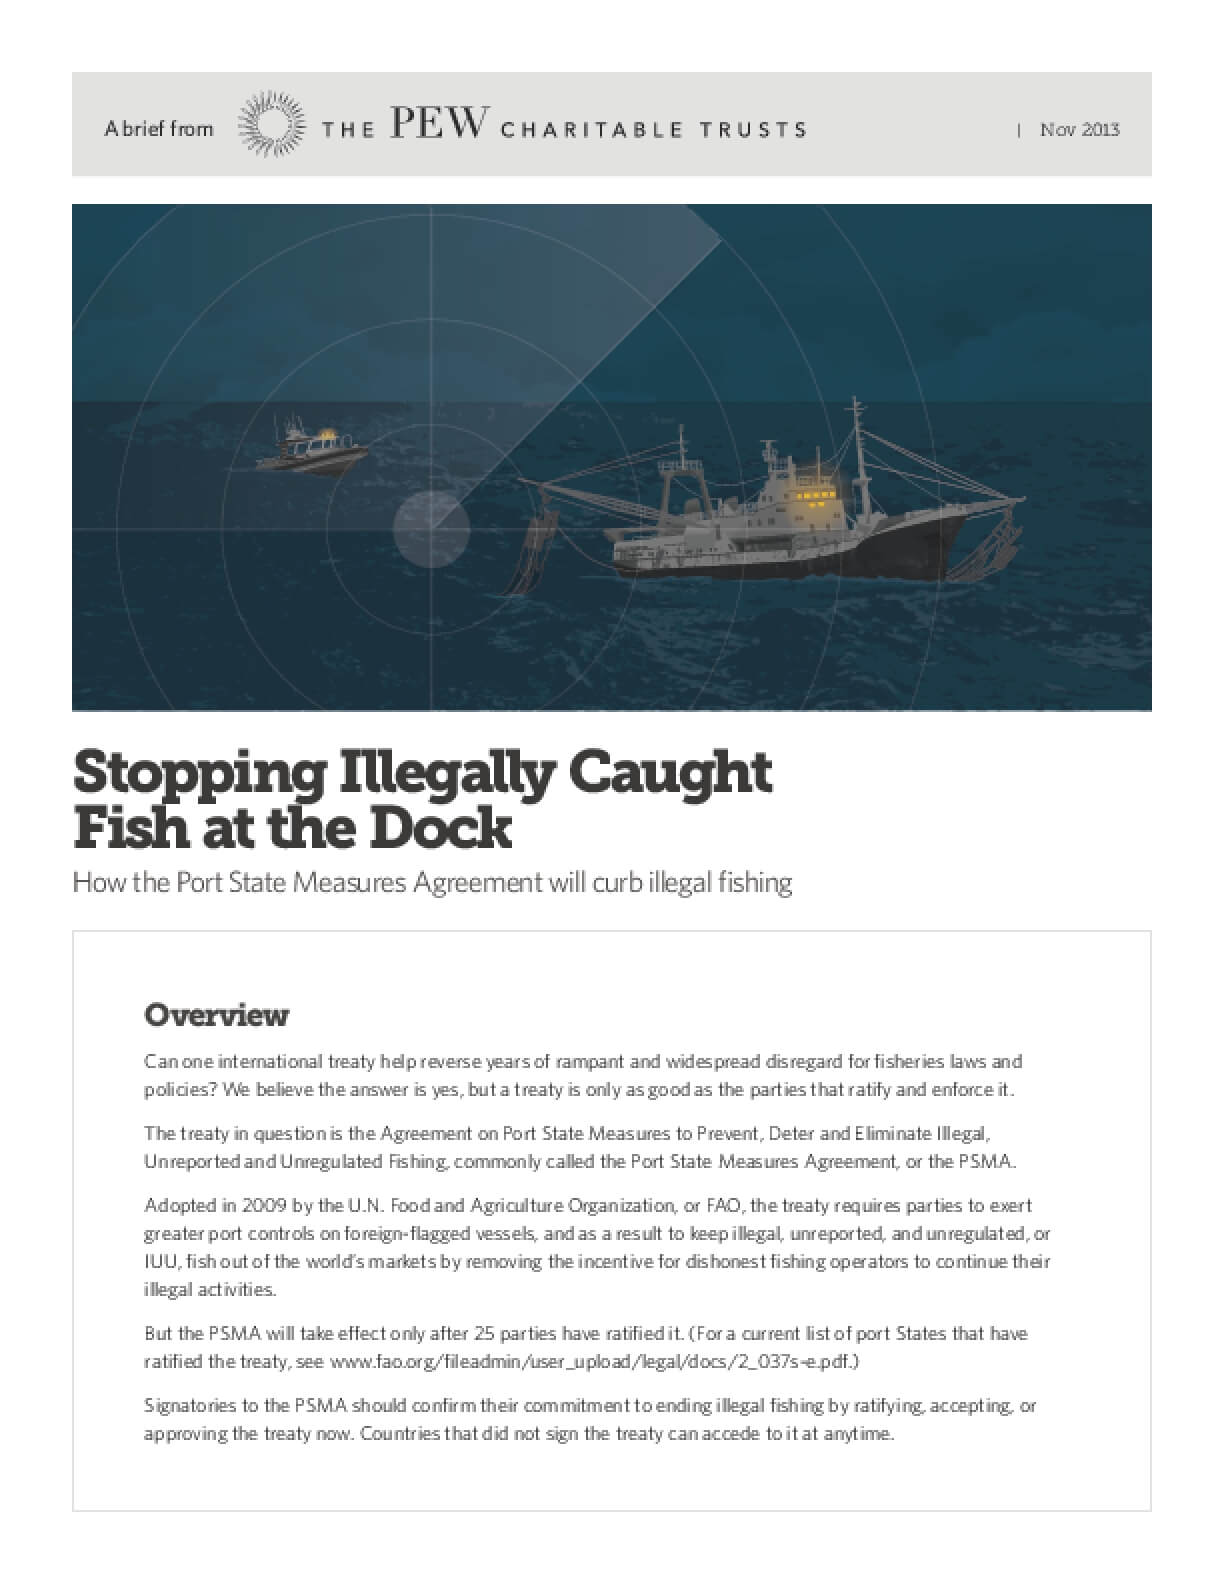 Stopping Illegally Caught Fish at the Dock How the Port State Measures Agreement Will Curb Illegal Fishing